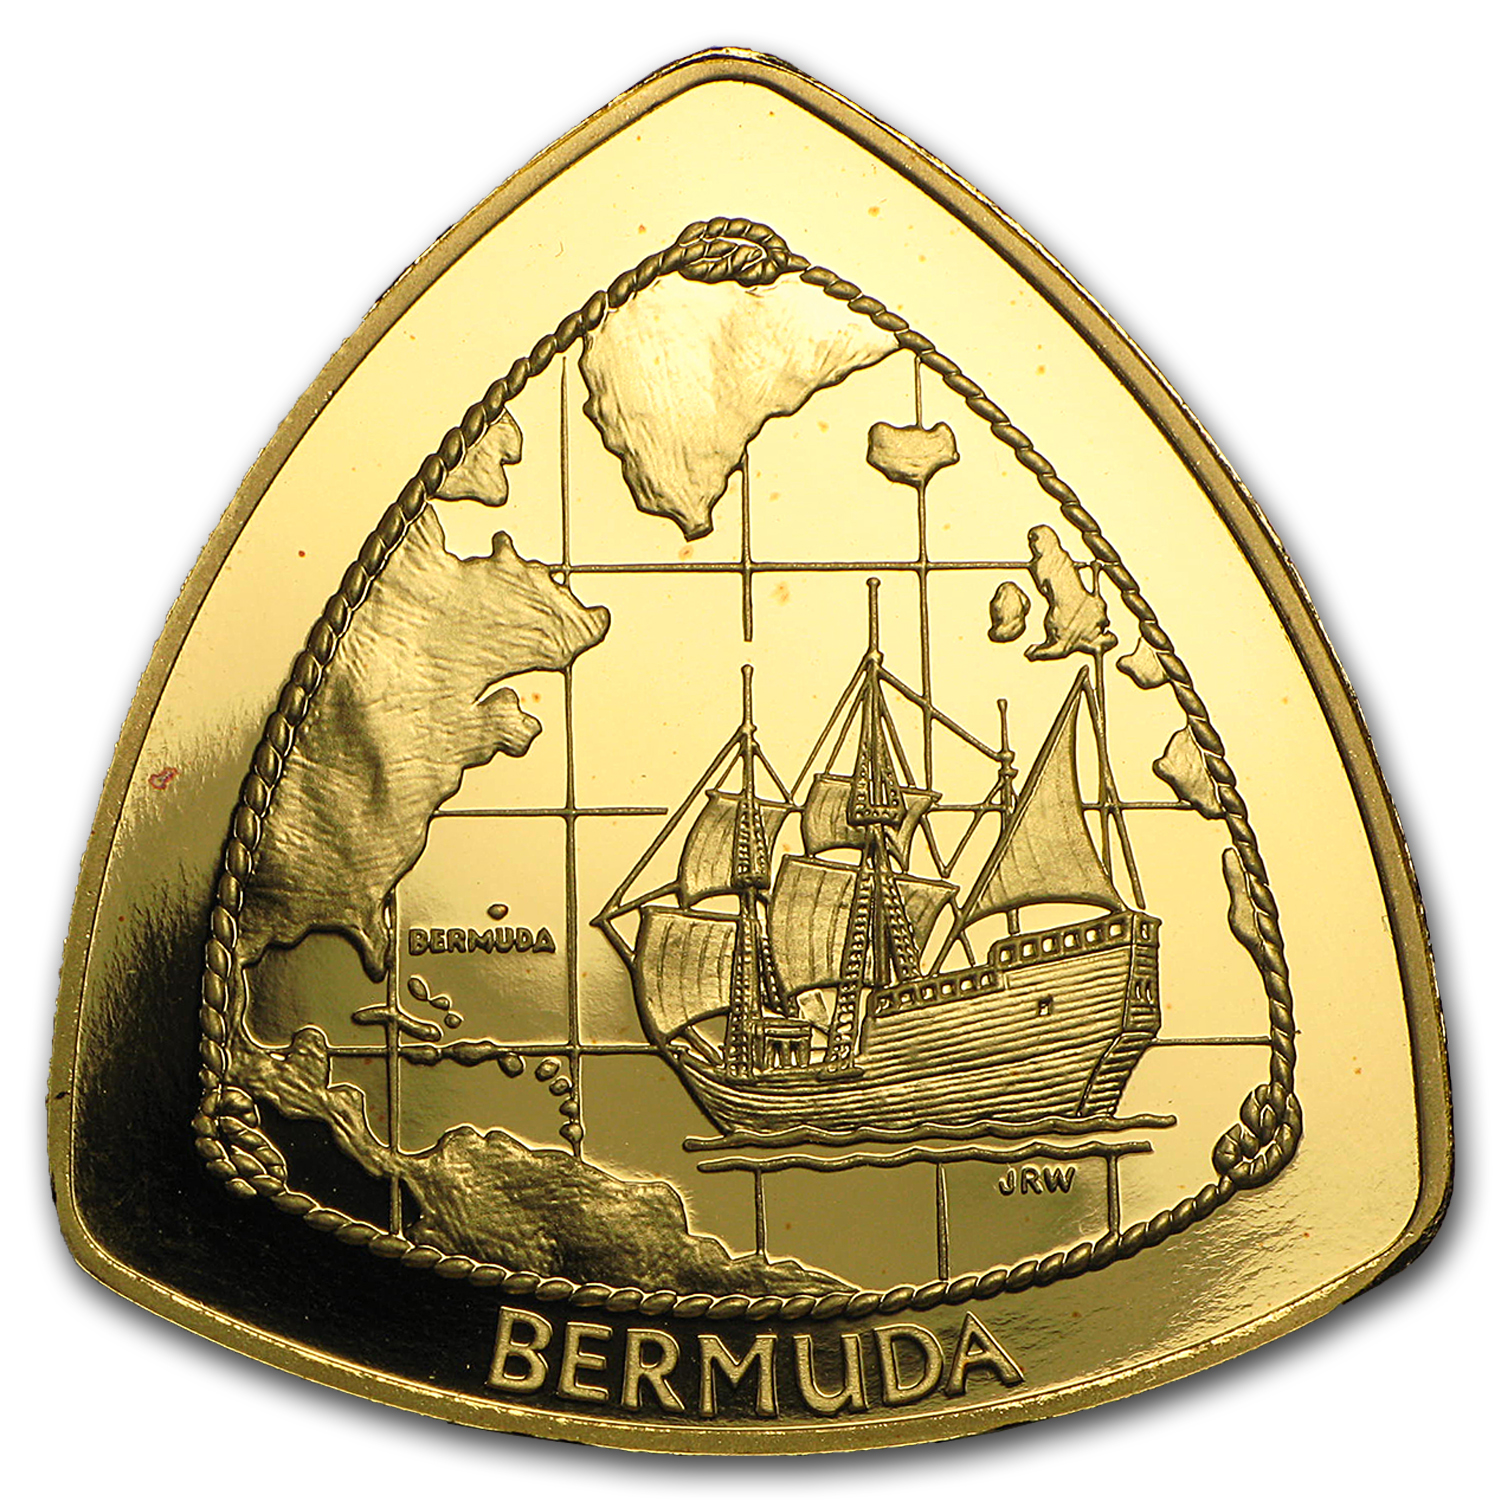 1998 Bermuda 1 oz Proof Gold $60 Triangle